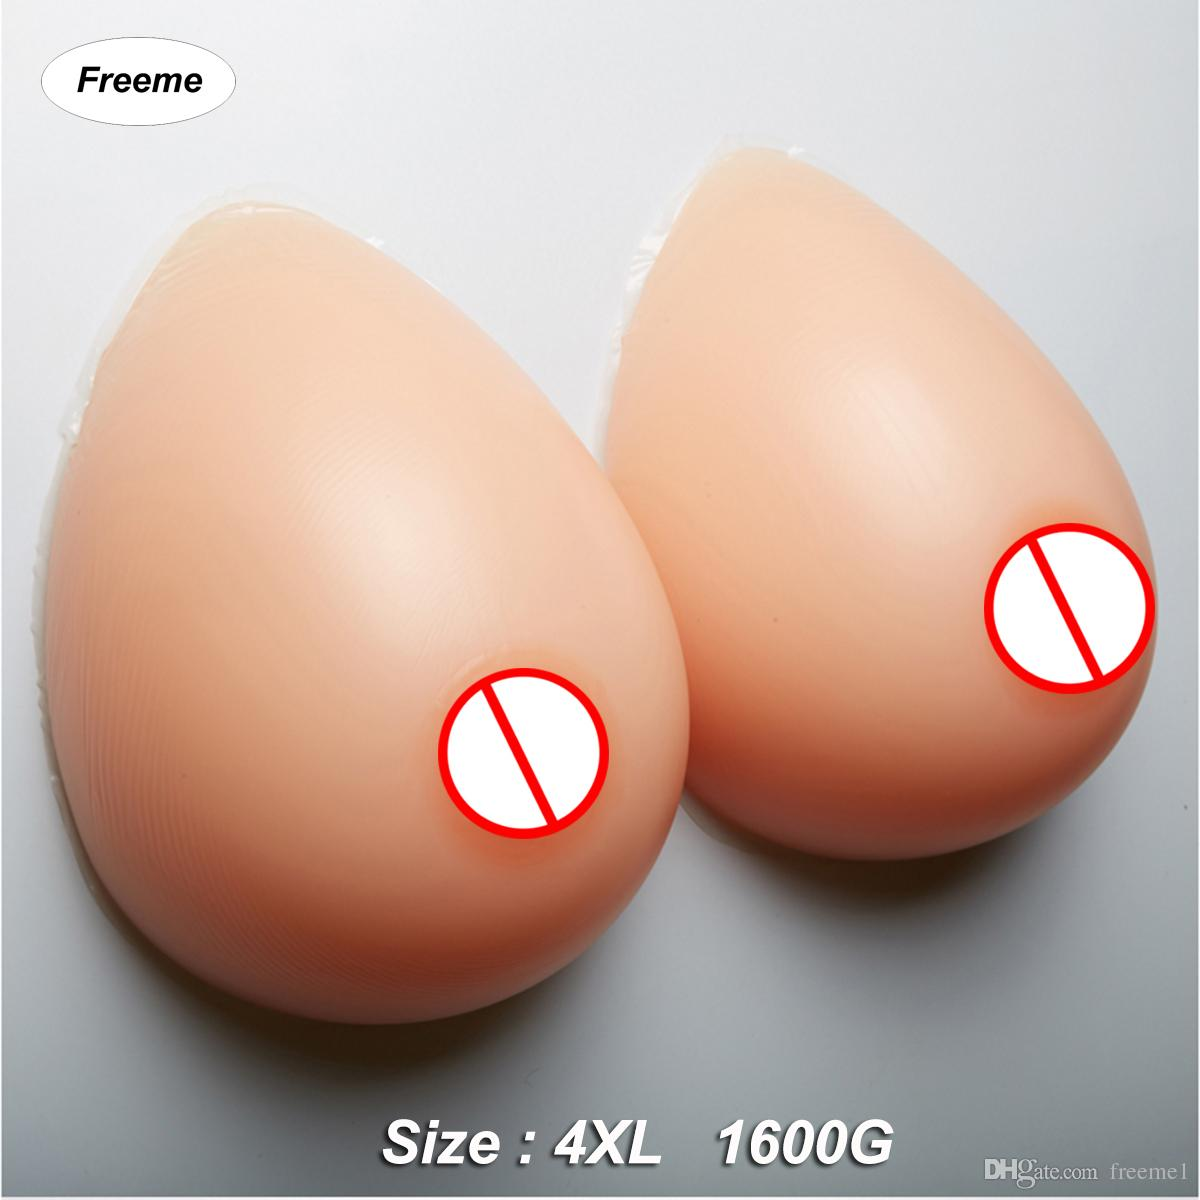 Freeme Breast Forms Silicone for Crossdresser Transgender Artificial ... 3d8bb4240